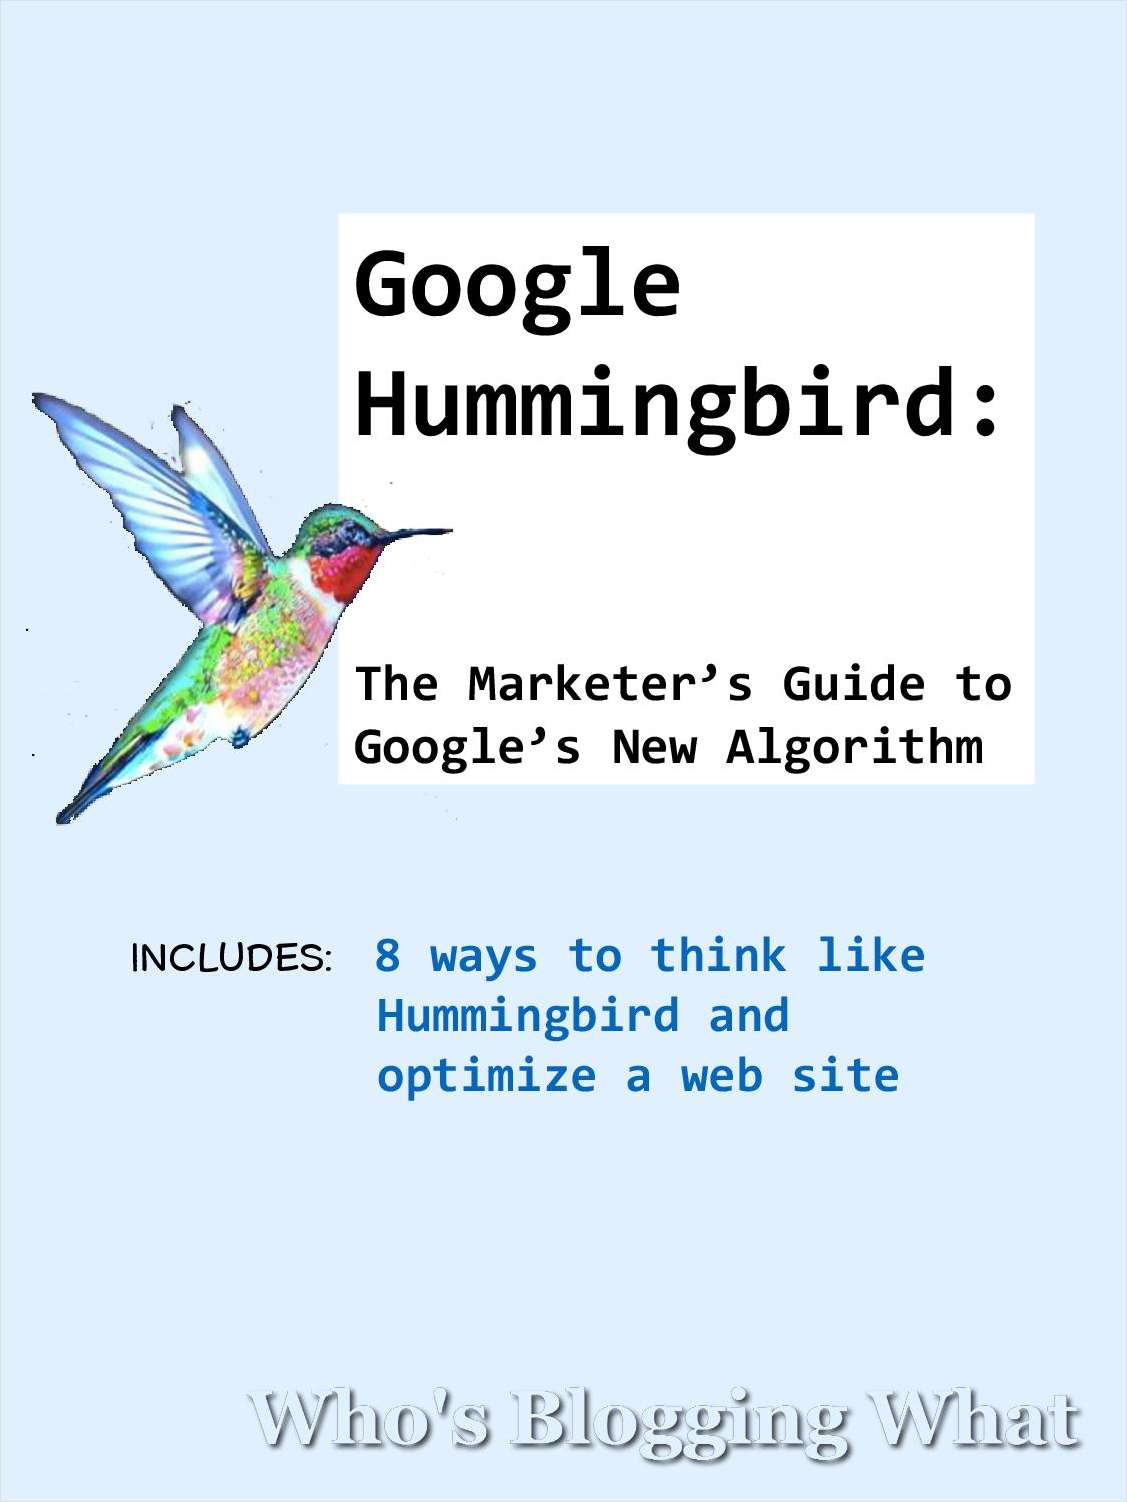 Google Hummingbird - The Marketer's Guide